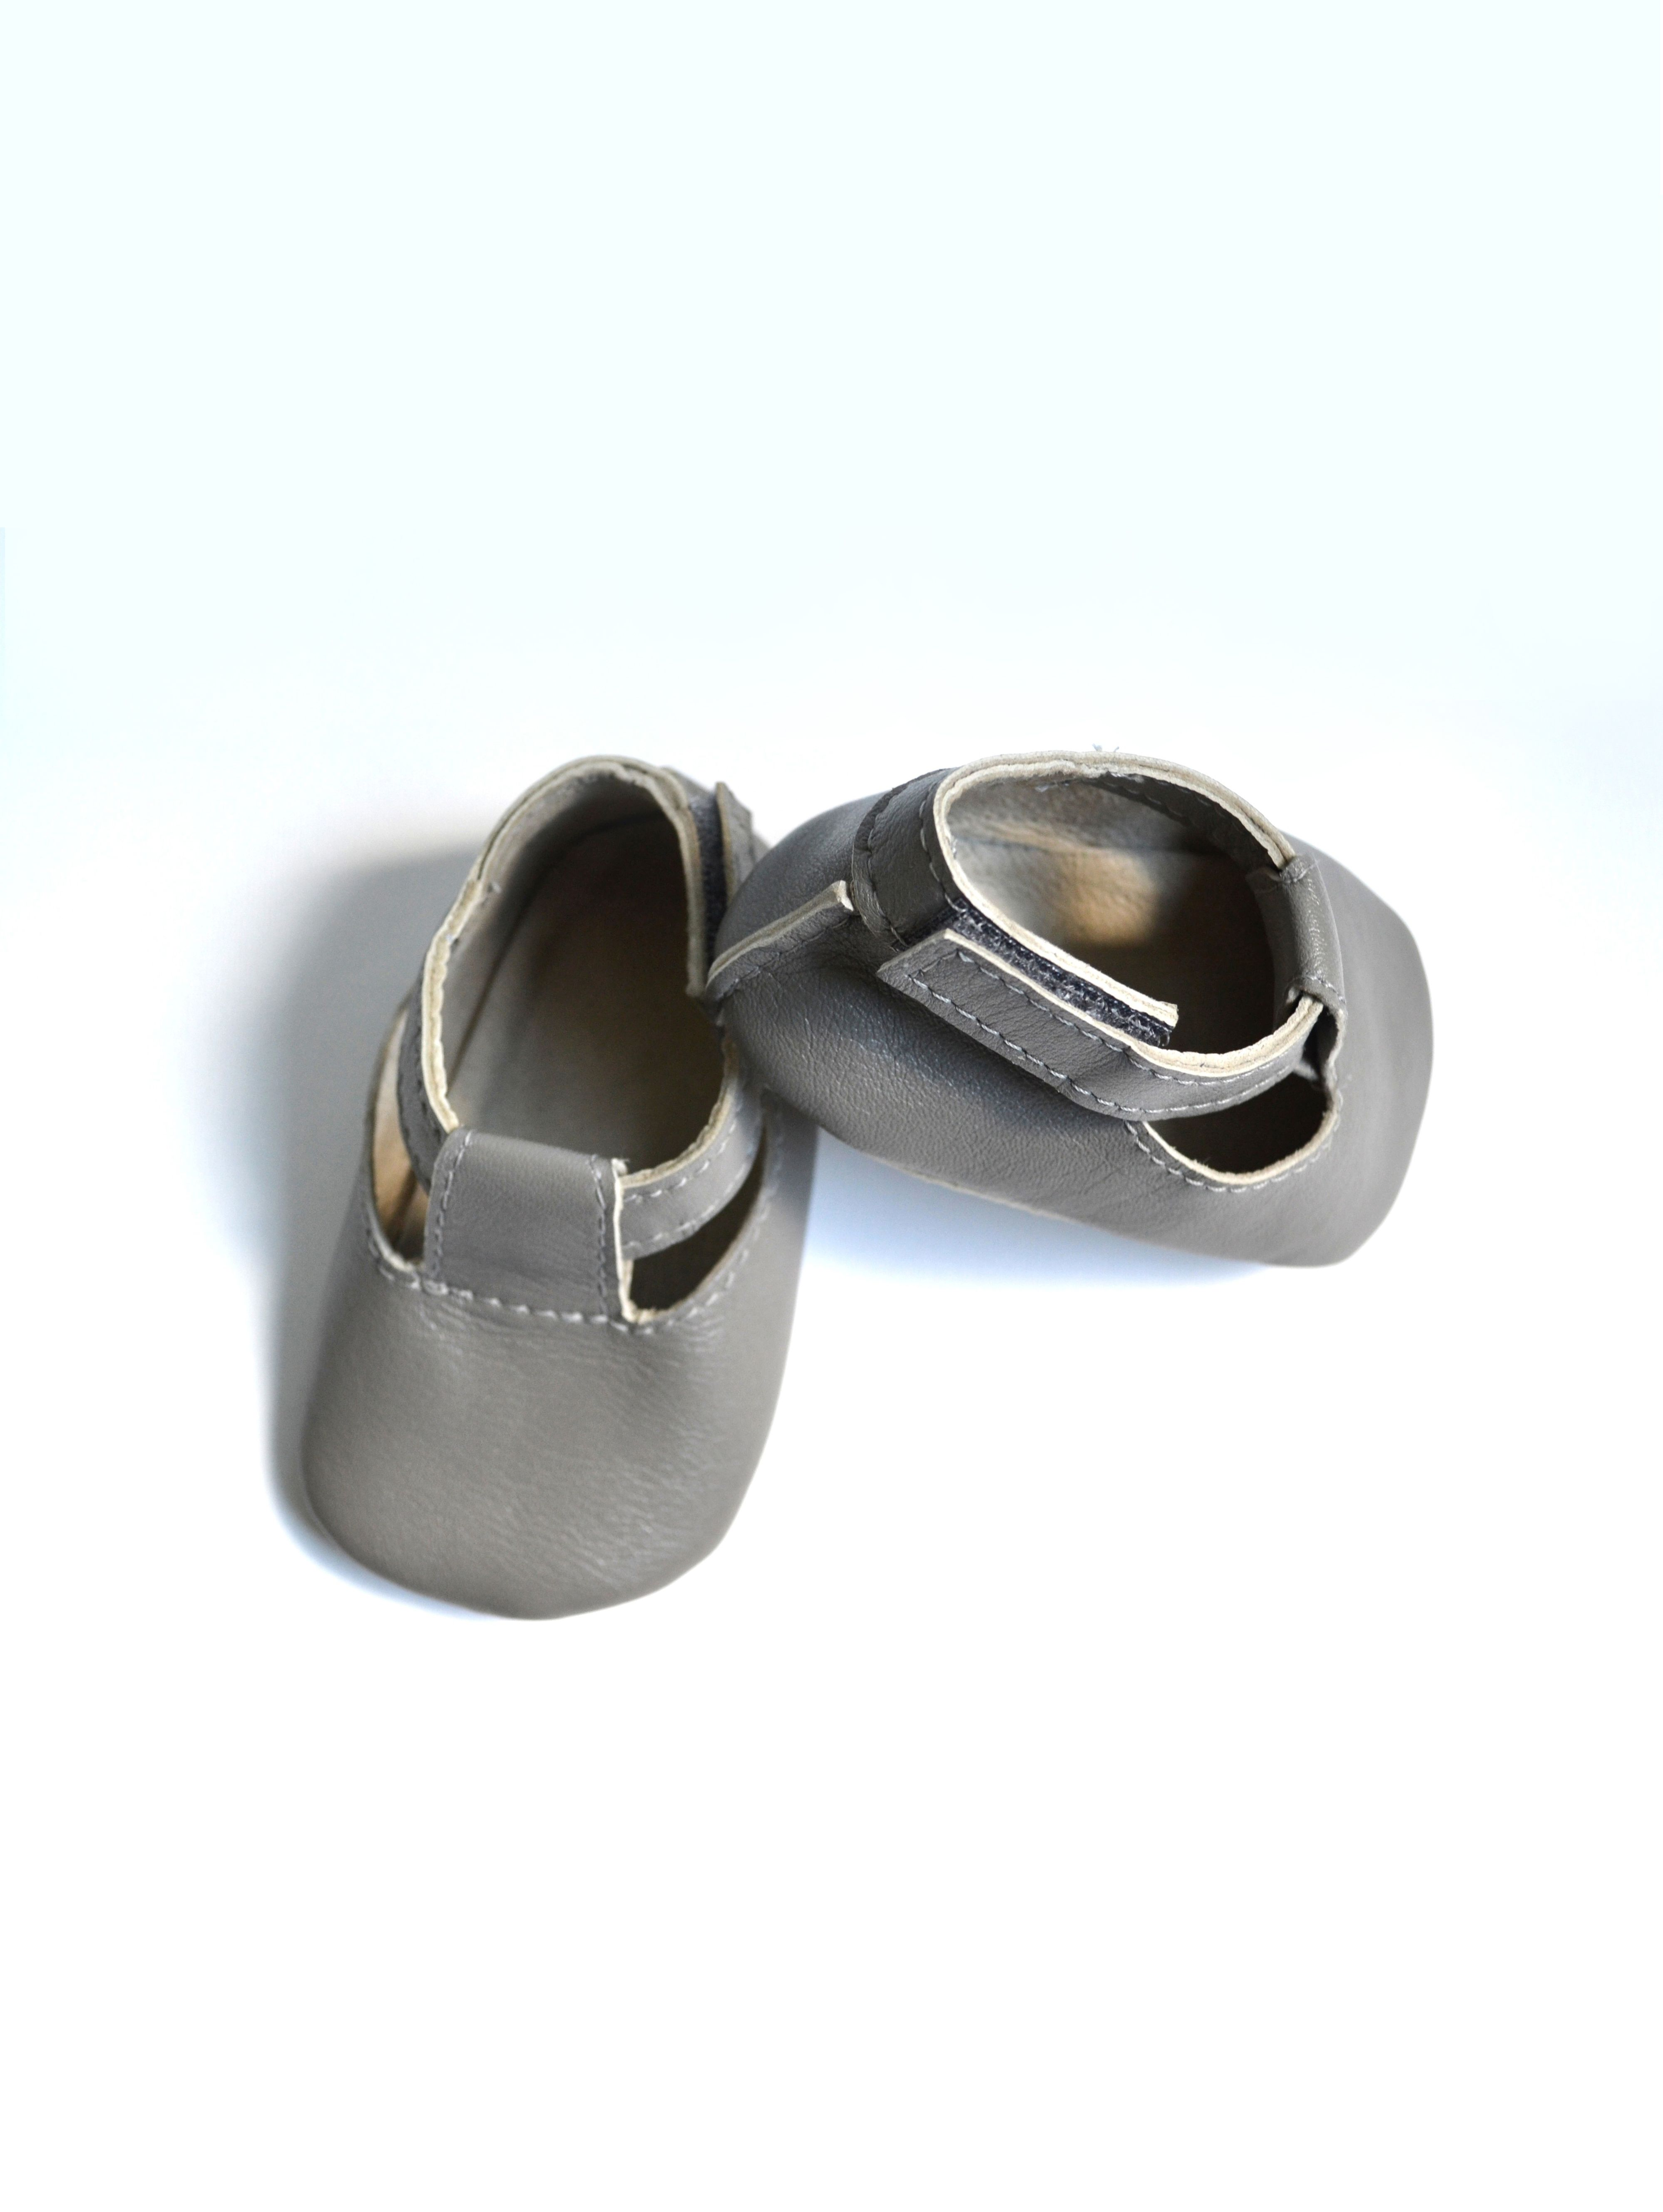 Handmade soft sole genuine leather grey baby sandals by MiniMo